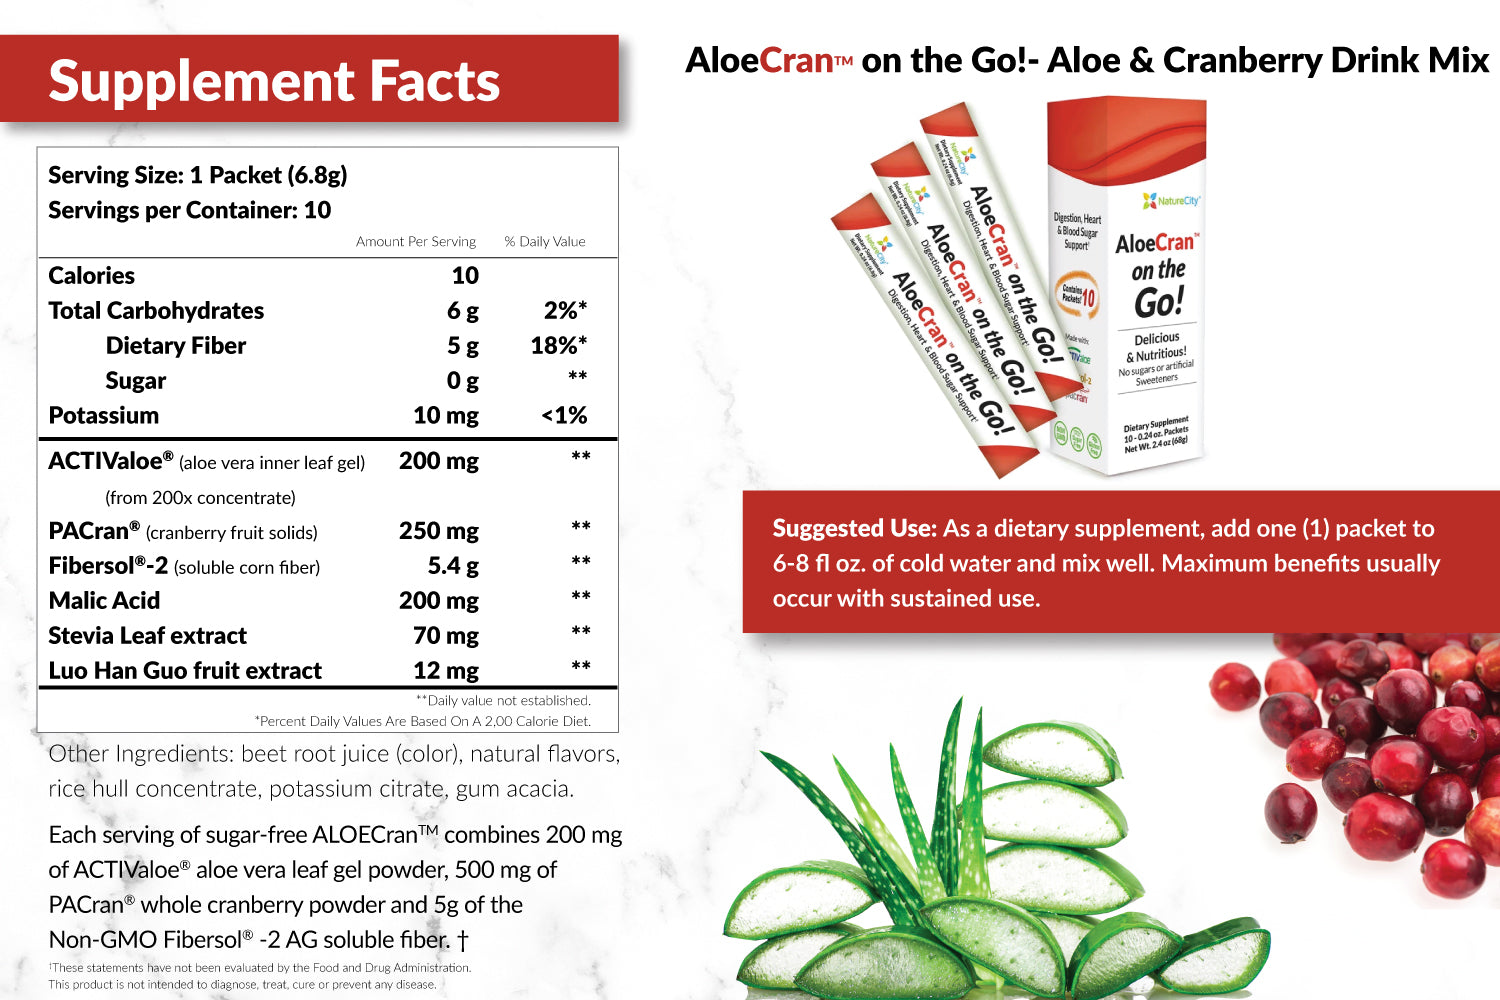 AloeCran on the Go Supplement Facts